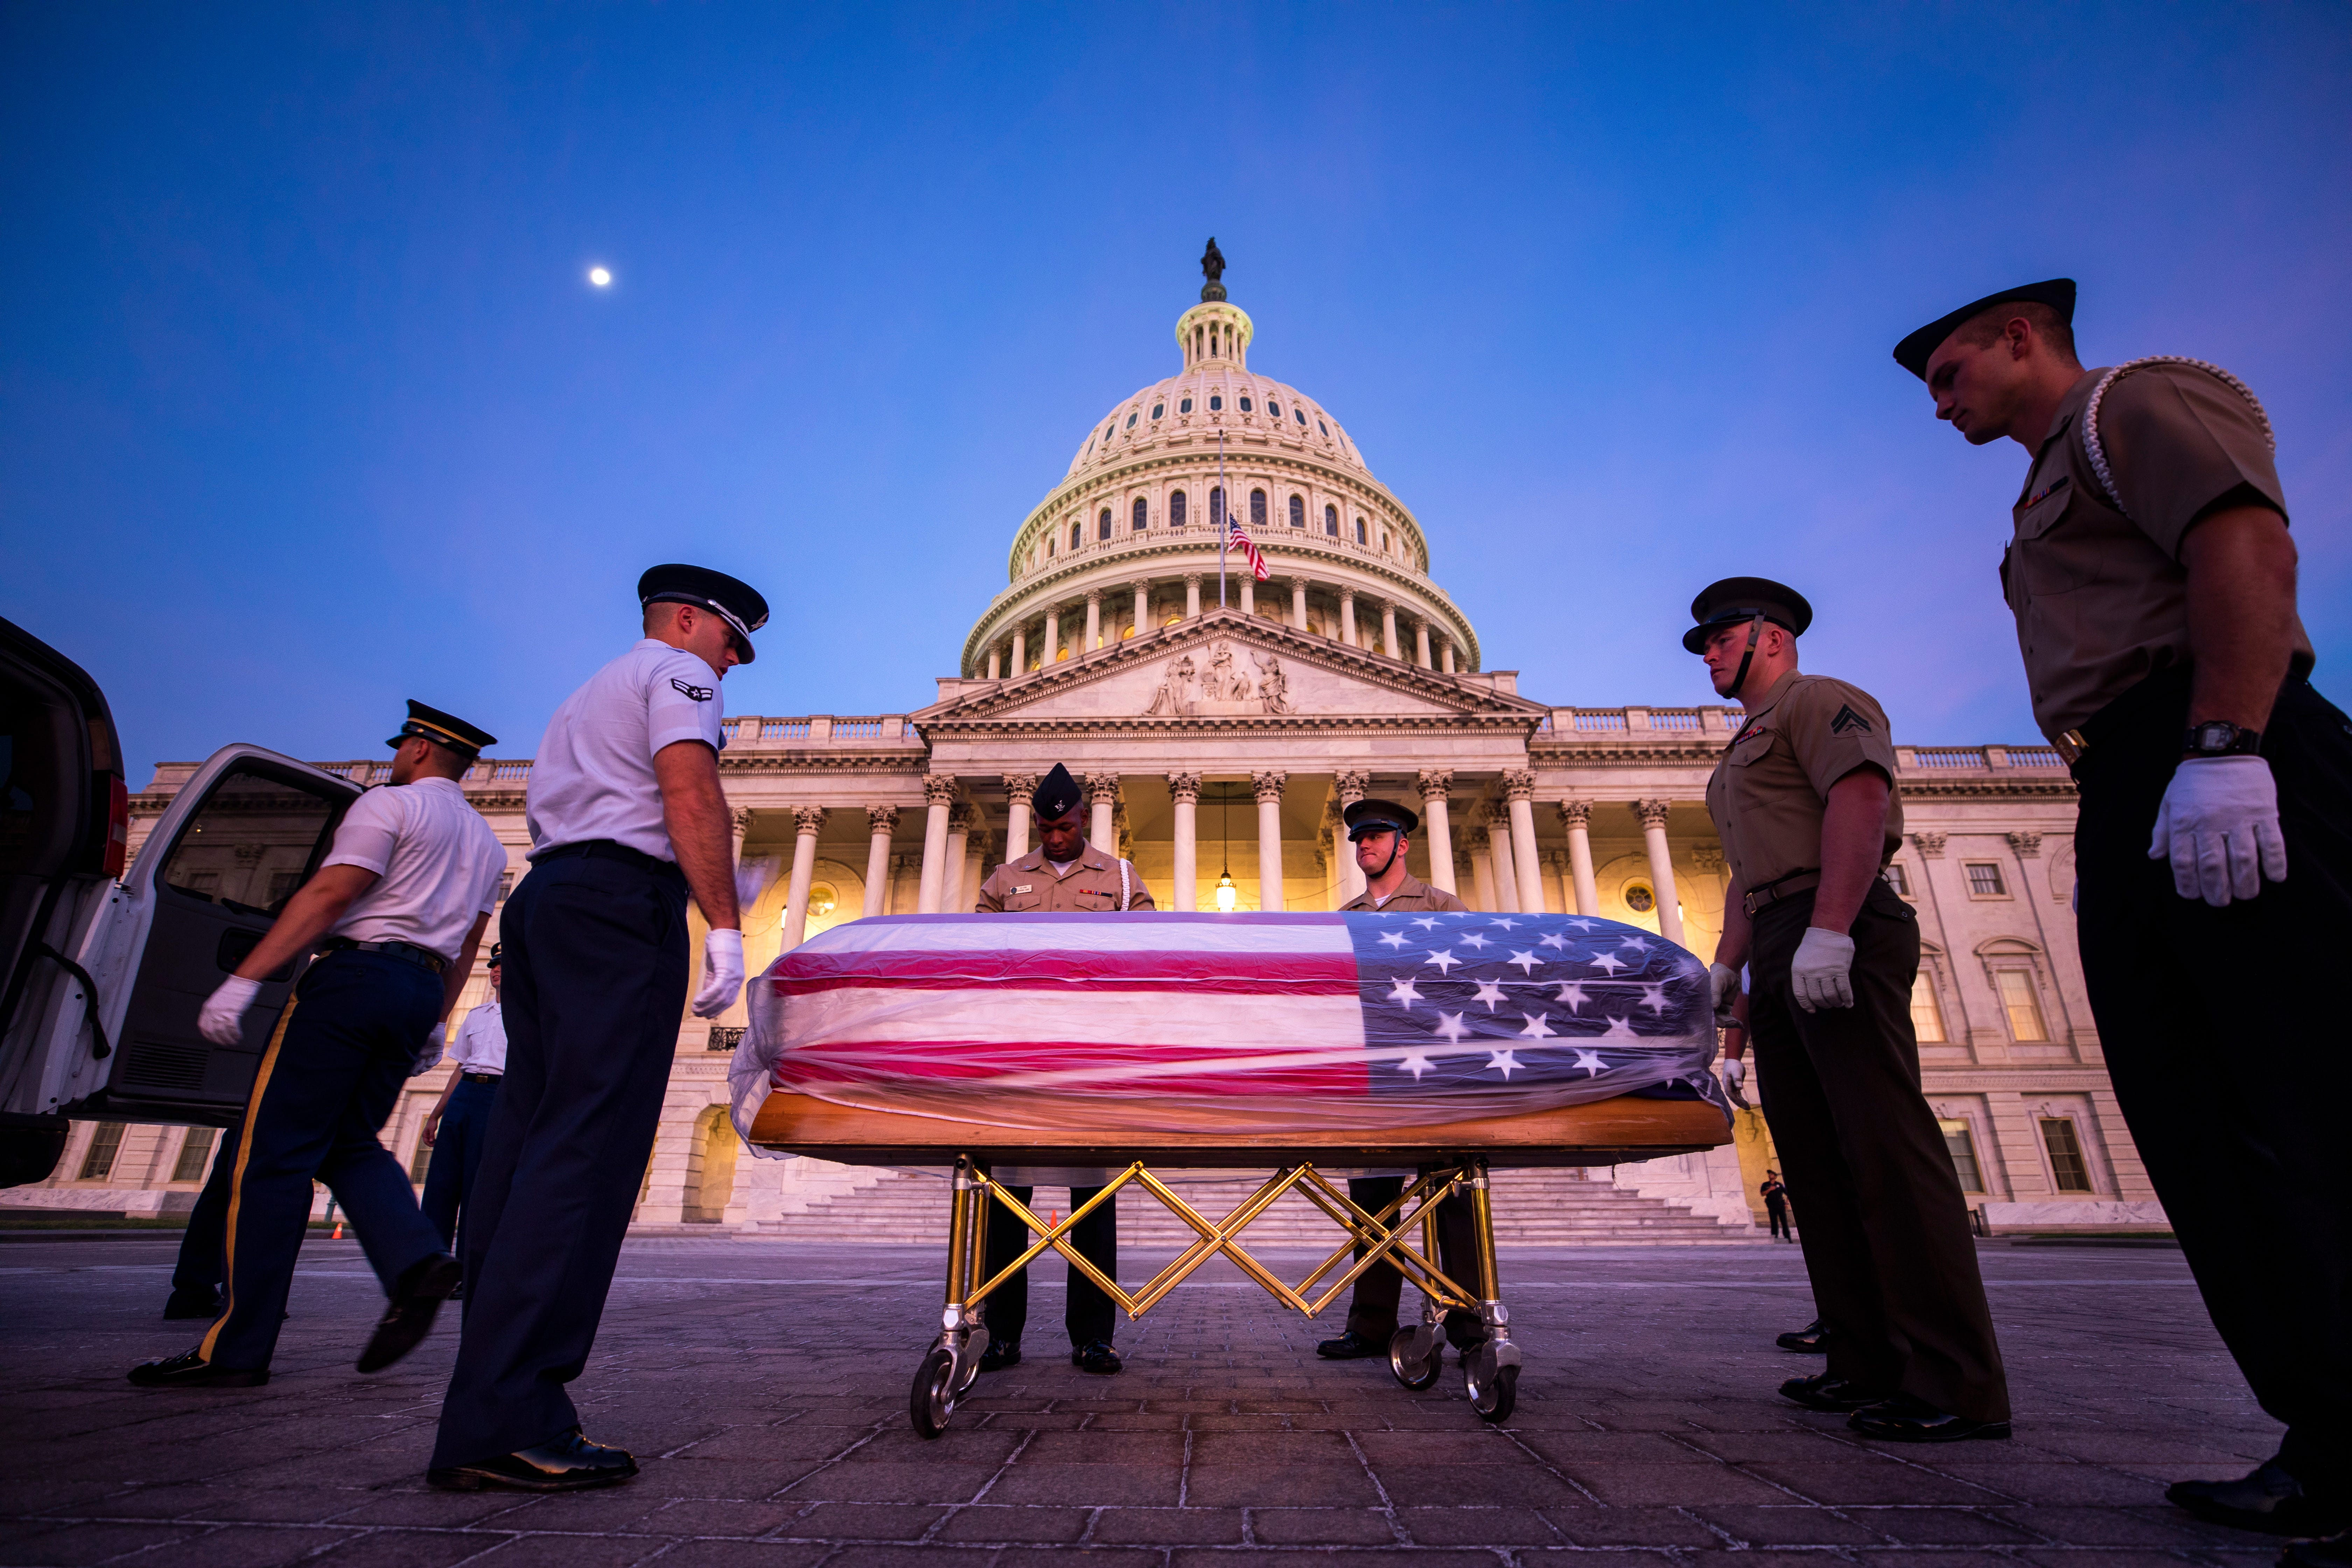 Joint service members of a military casket team use a stand-in for the casket of Senator John McCain to rehearse carrying the casket of into the US Capitol, where he will lie in state for one day in Washington, DC, Aug. 30, 2018. McCain died Aug. 25,